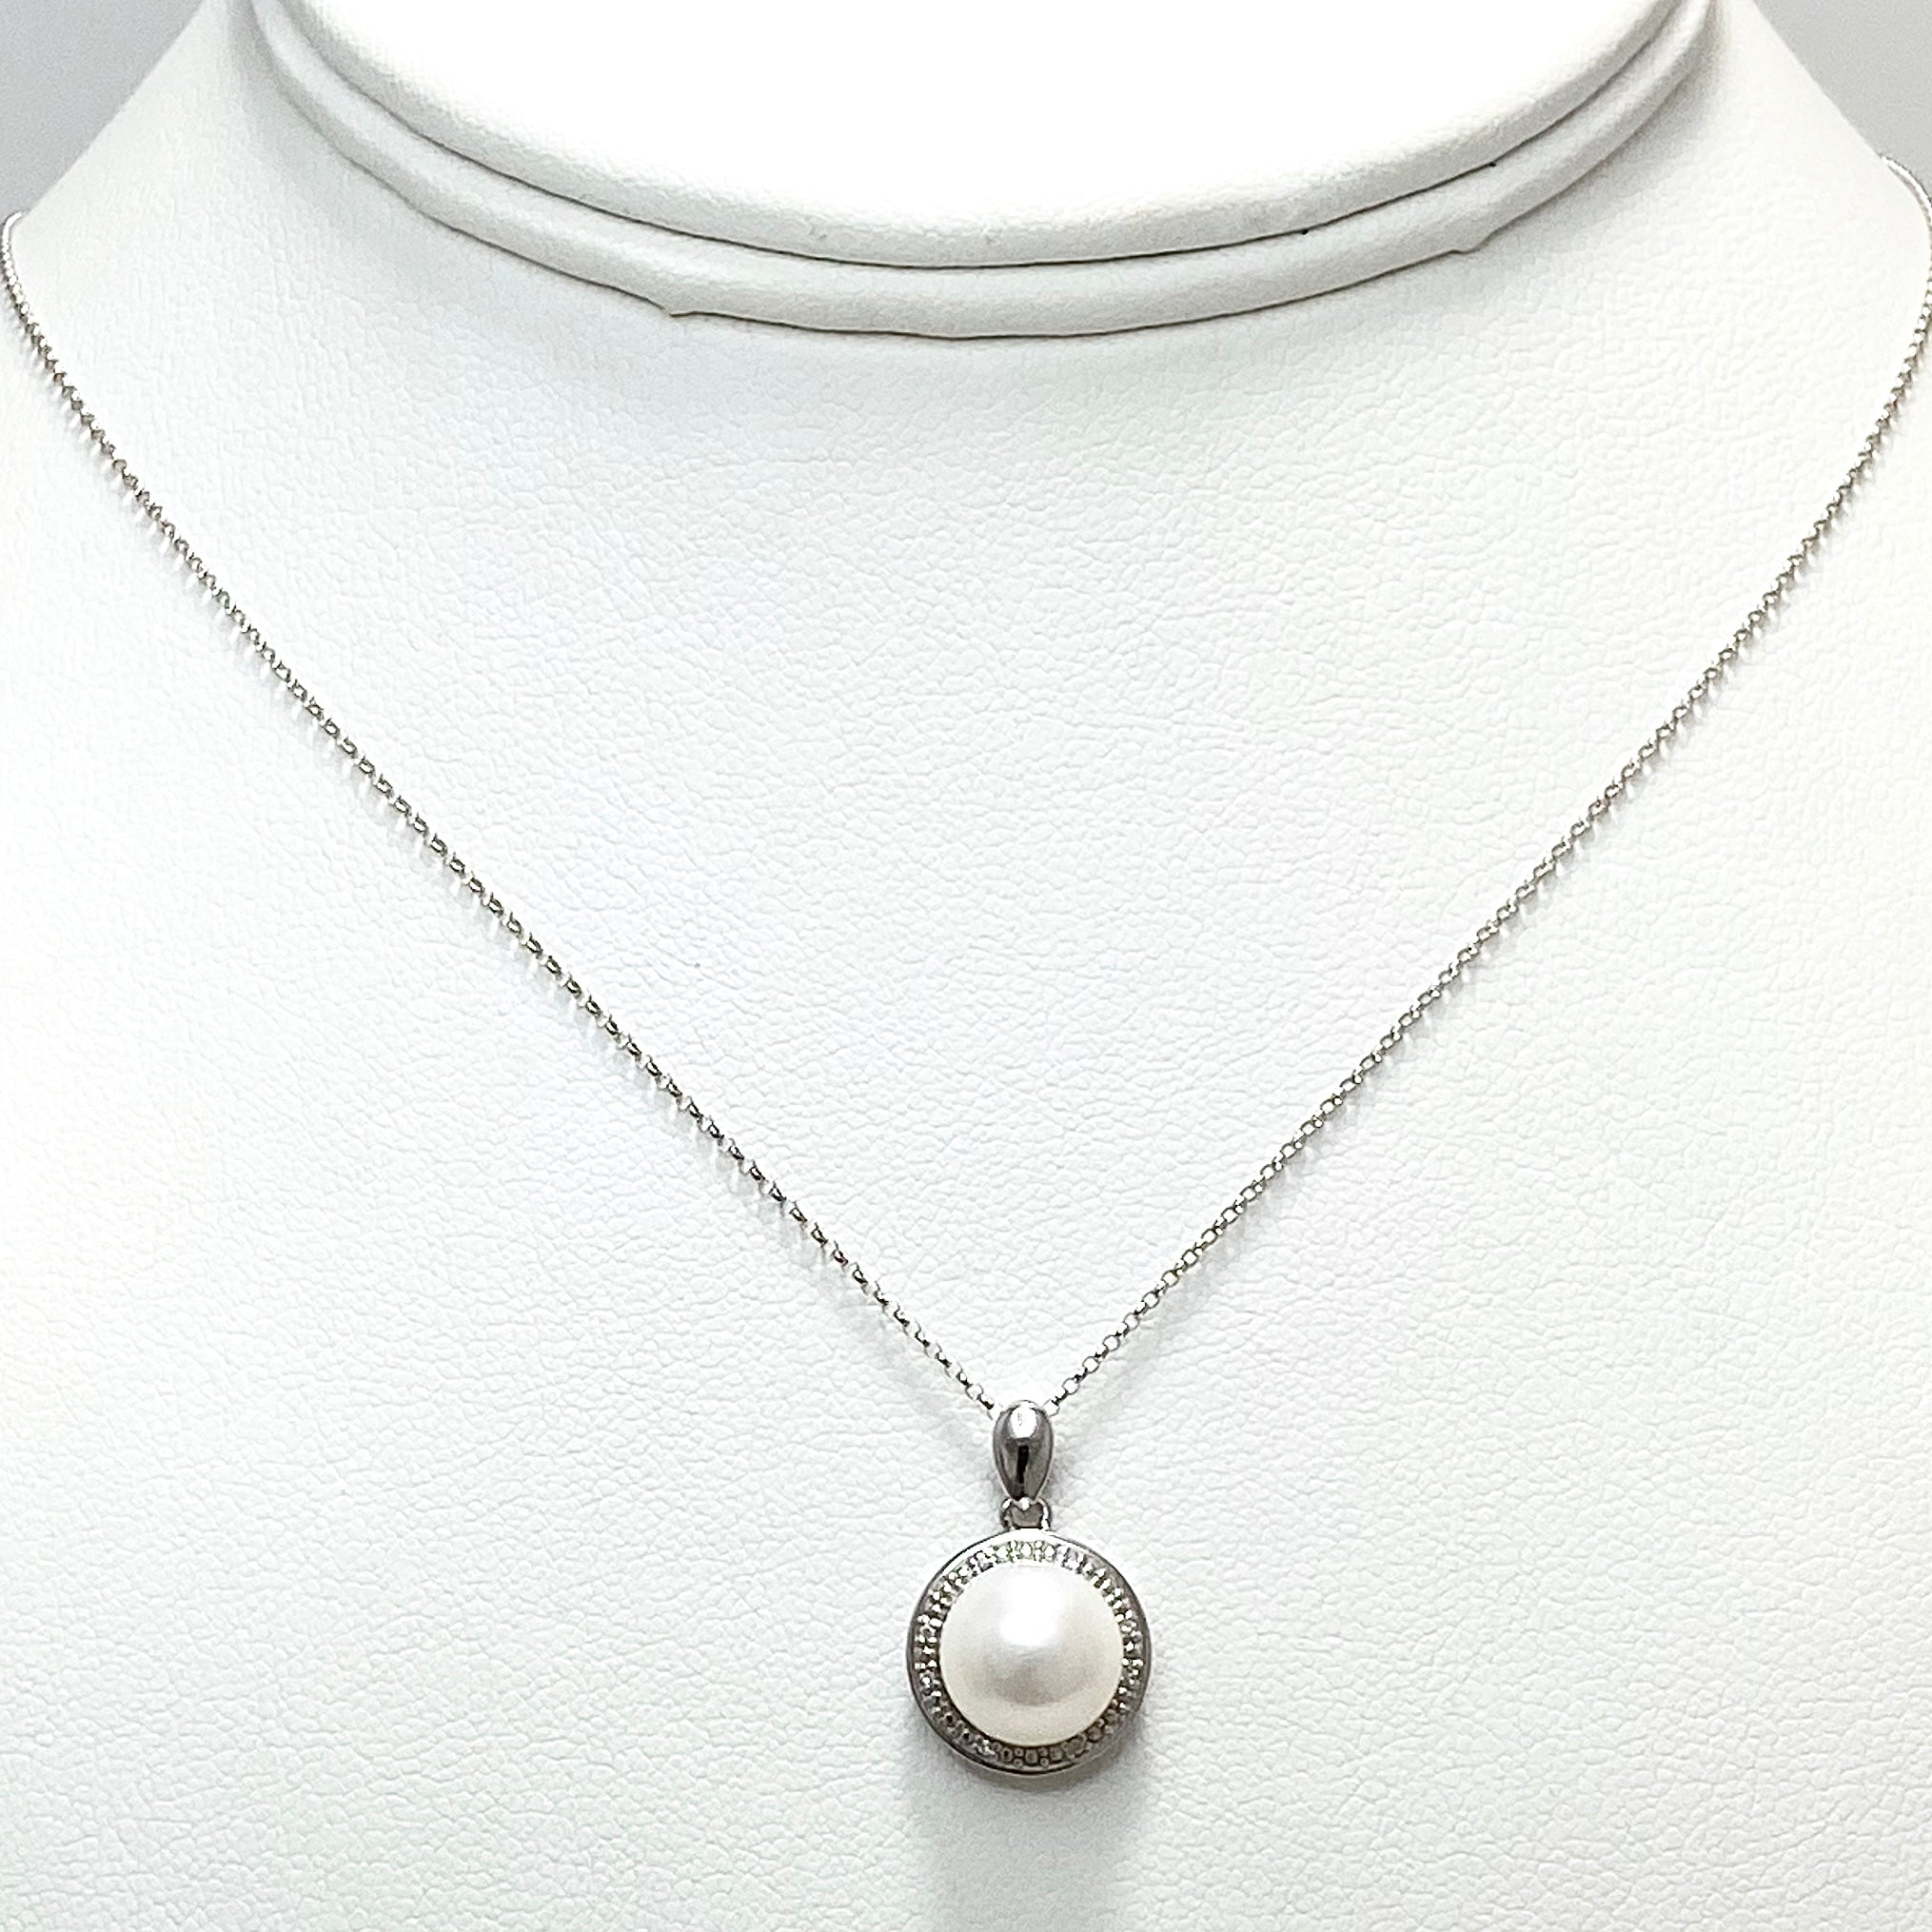 14K White Gold Necklace with Cultured Pearl and Diamonds